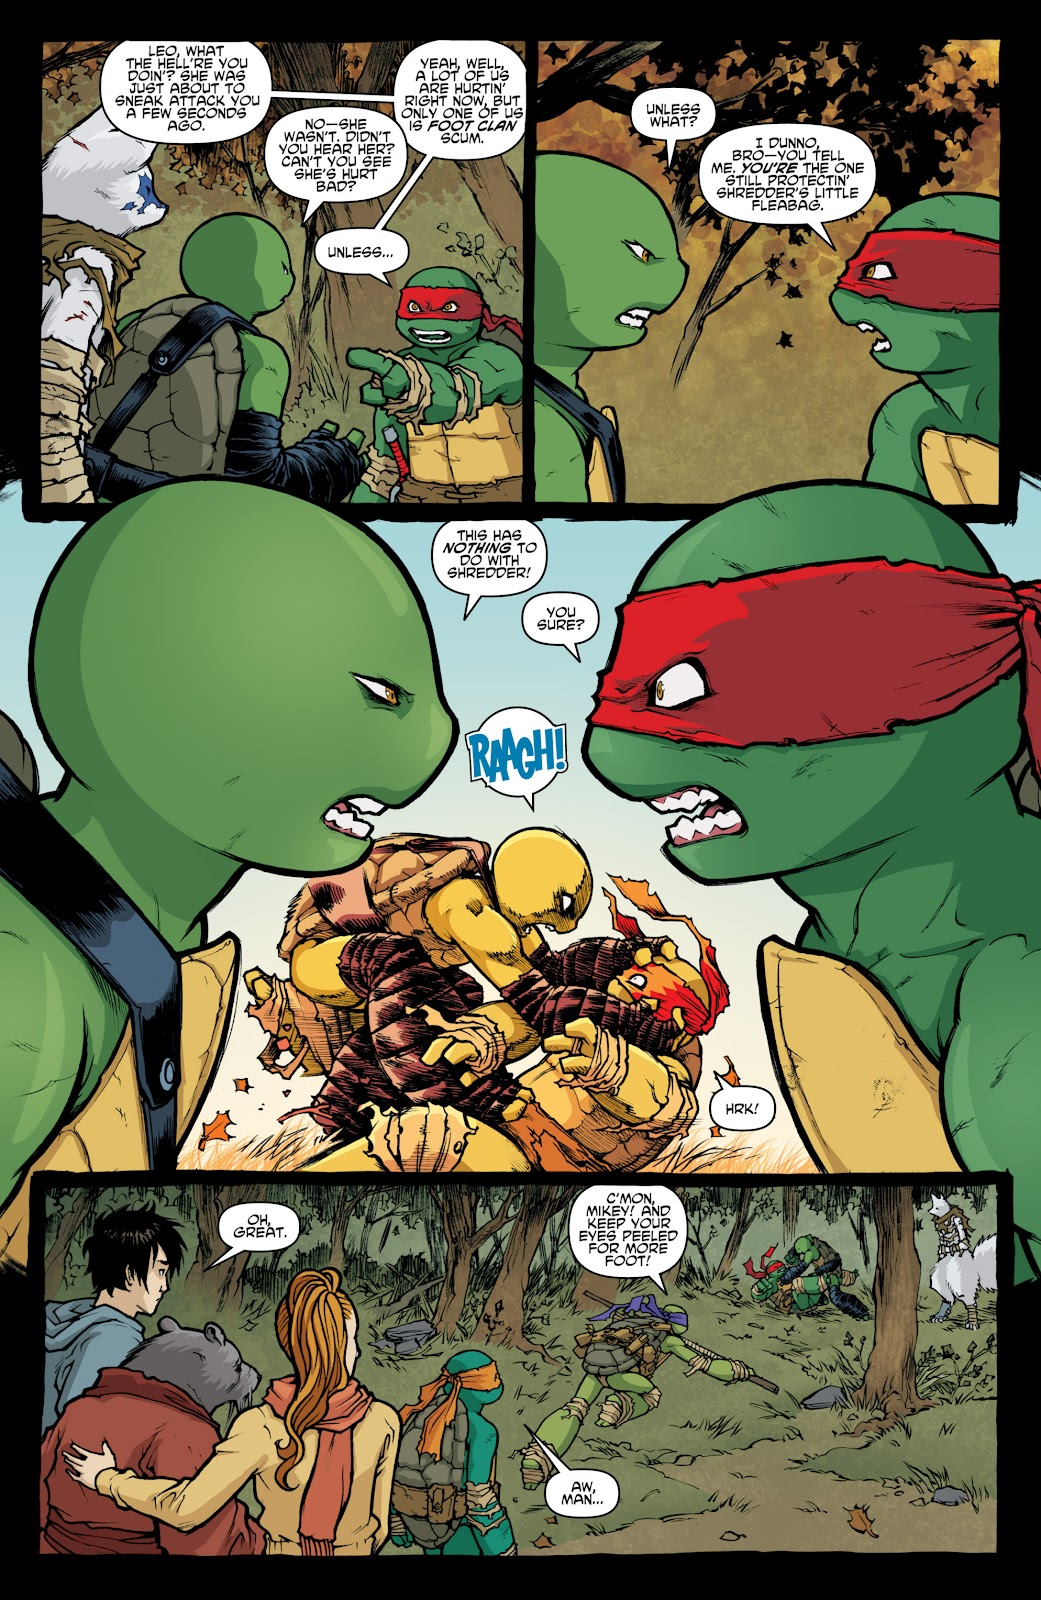 Read online Teenage Mutant Ninja Turtles: The IDW Collection comic -  Issue # TPB 4 (Part 1) - 16